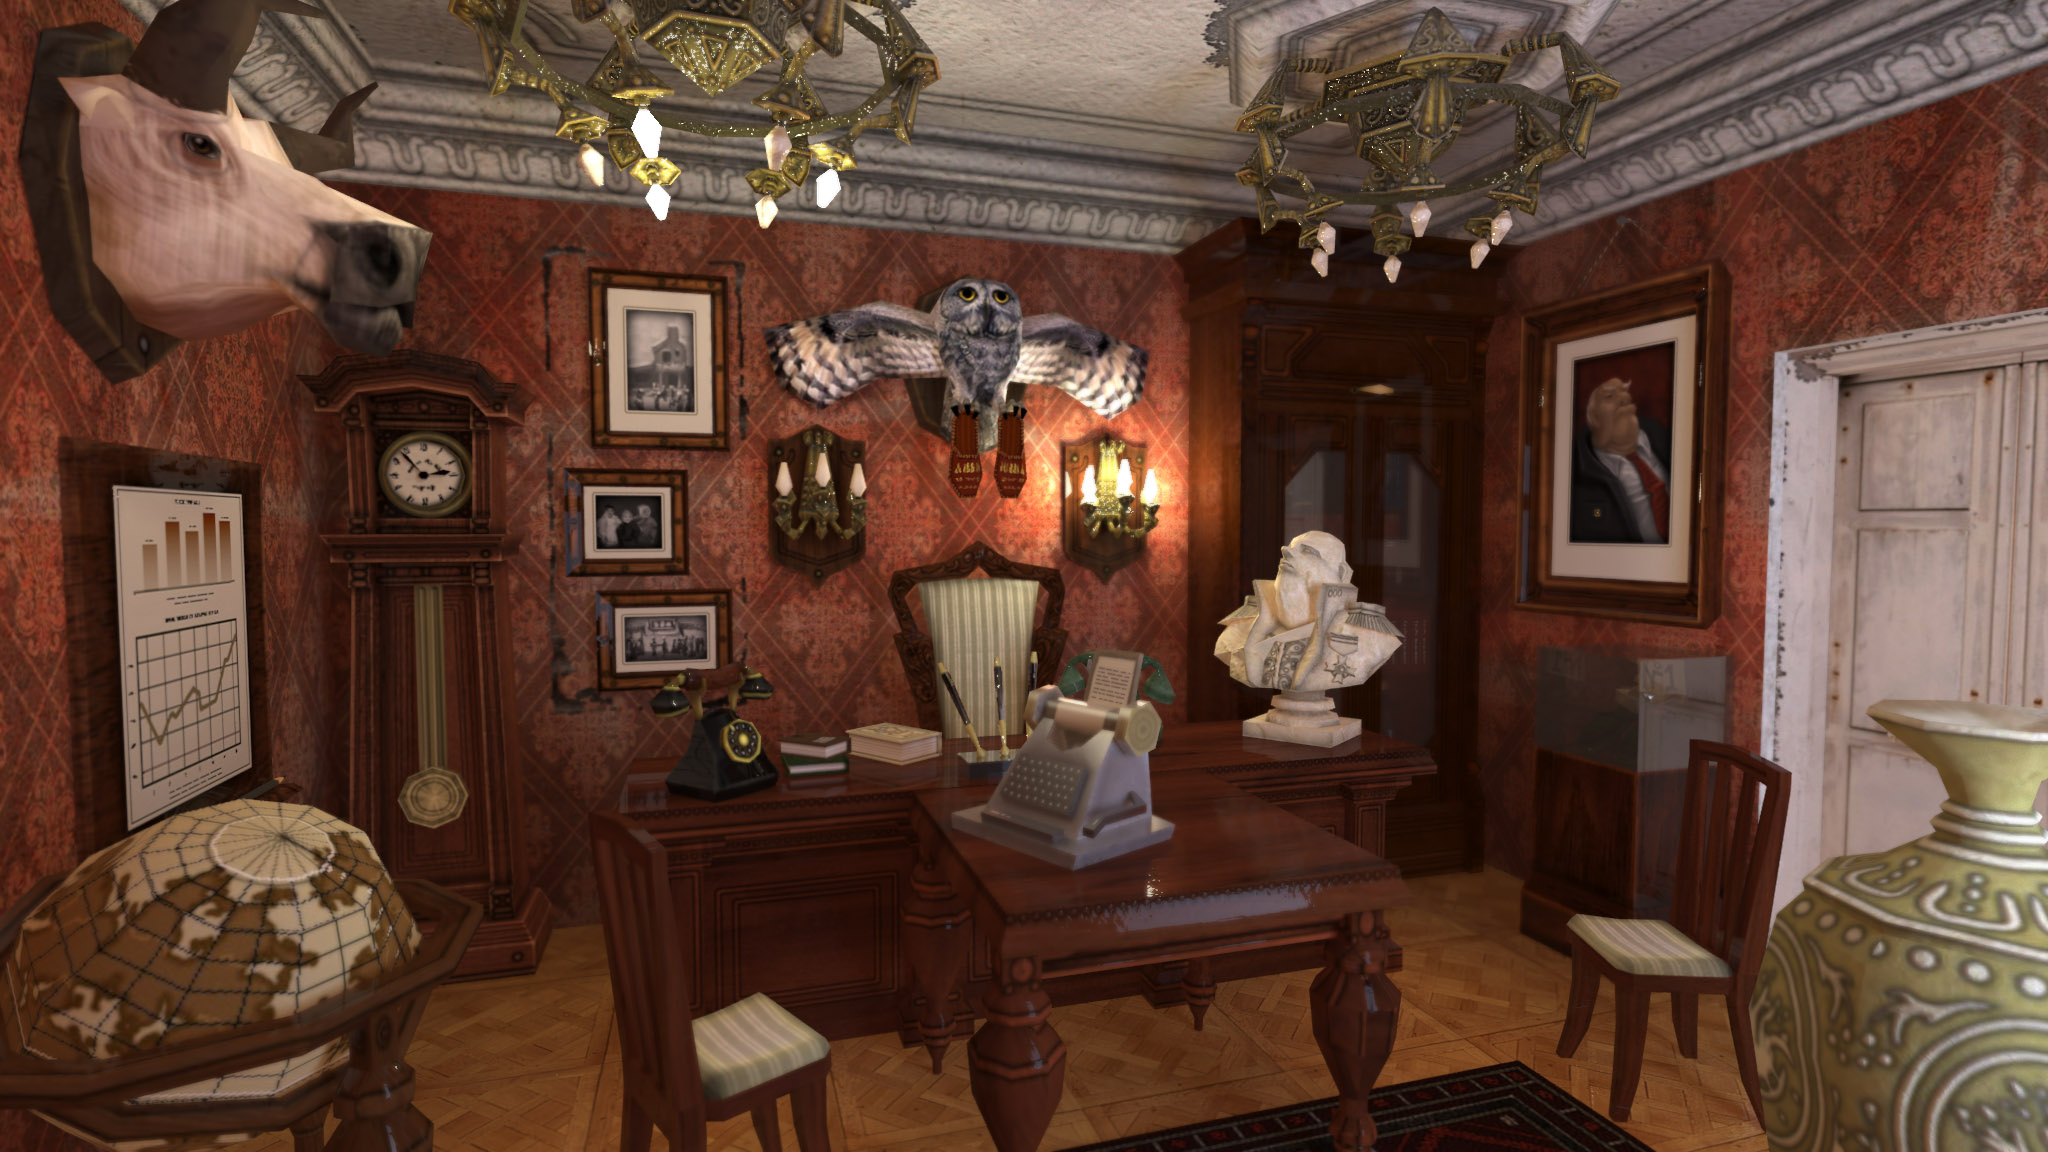 The chief's office in 3D. For ZuZuZu mobile game.